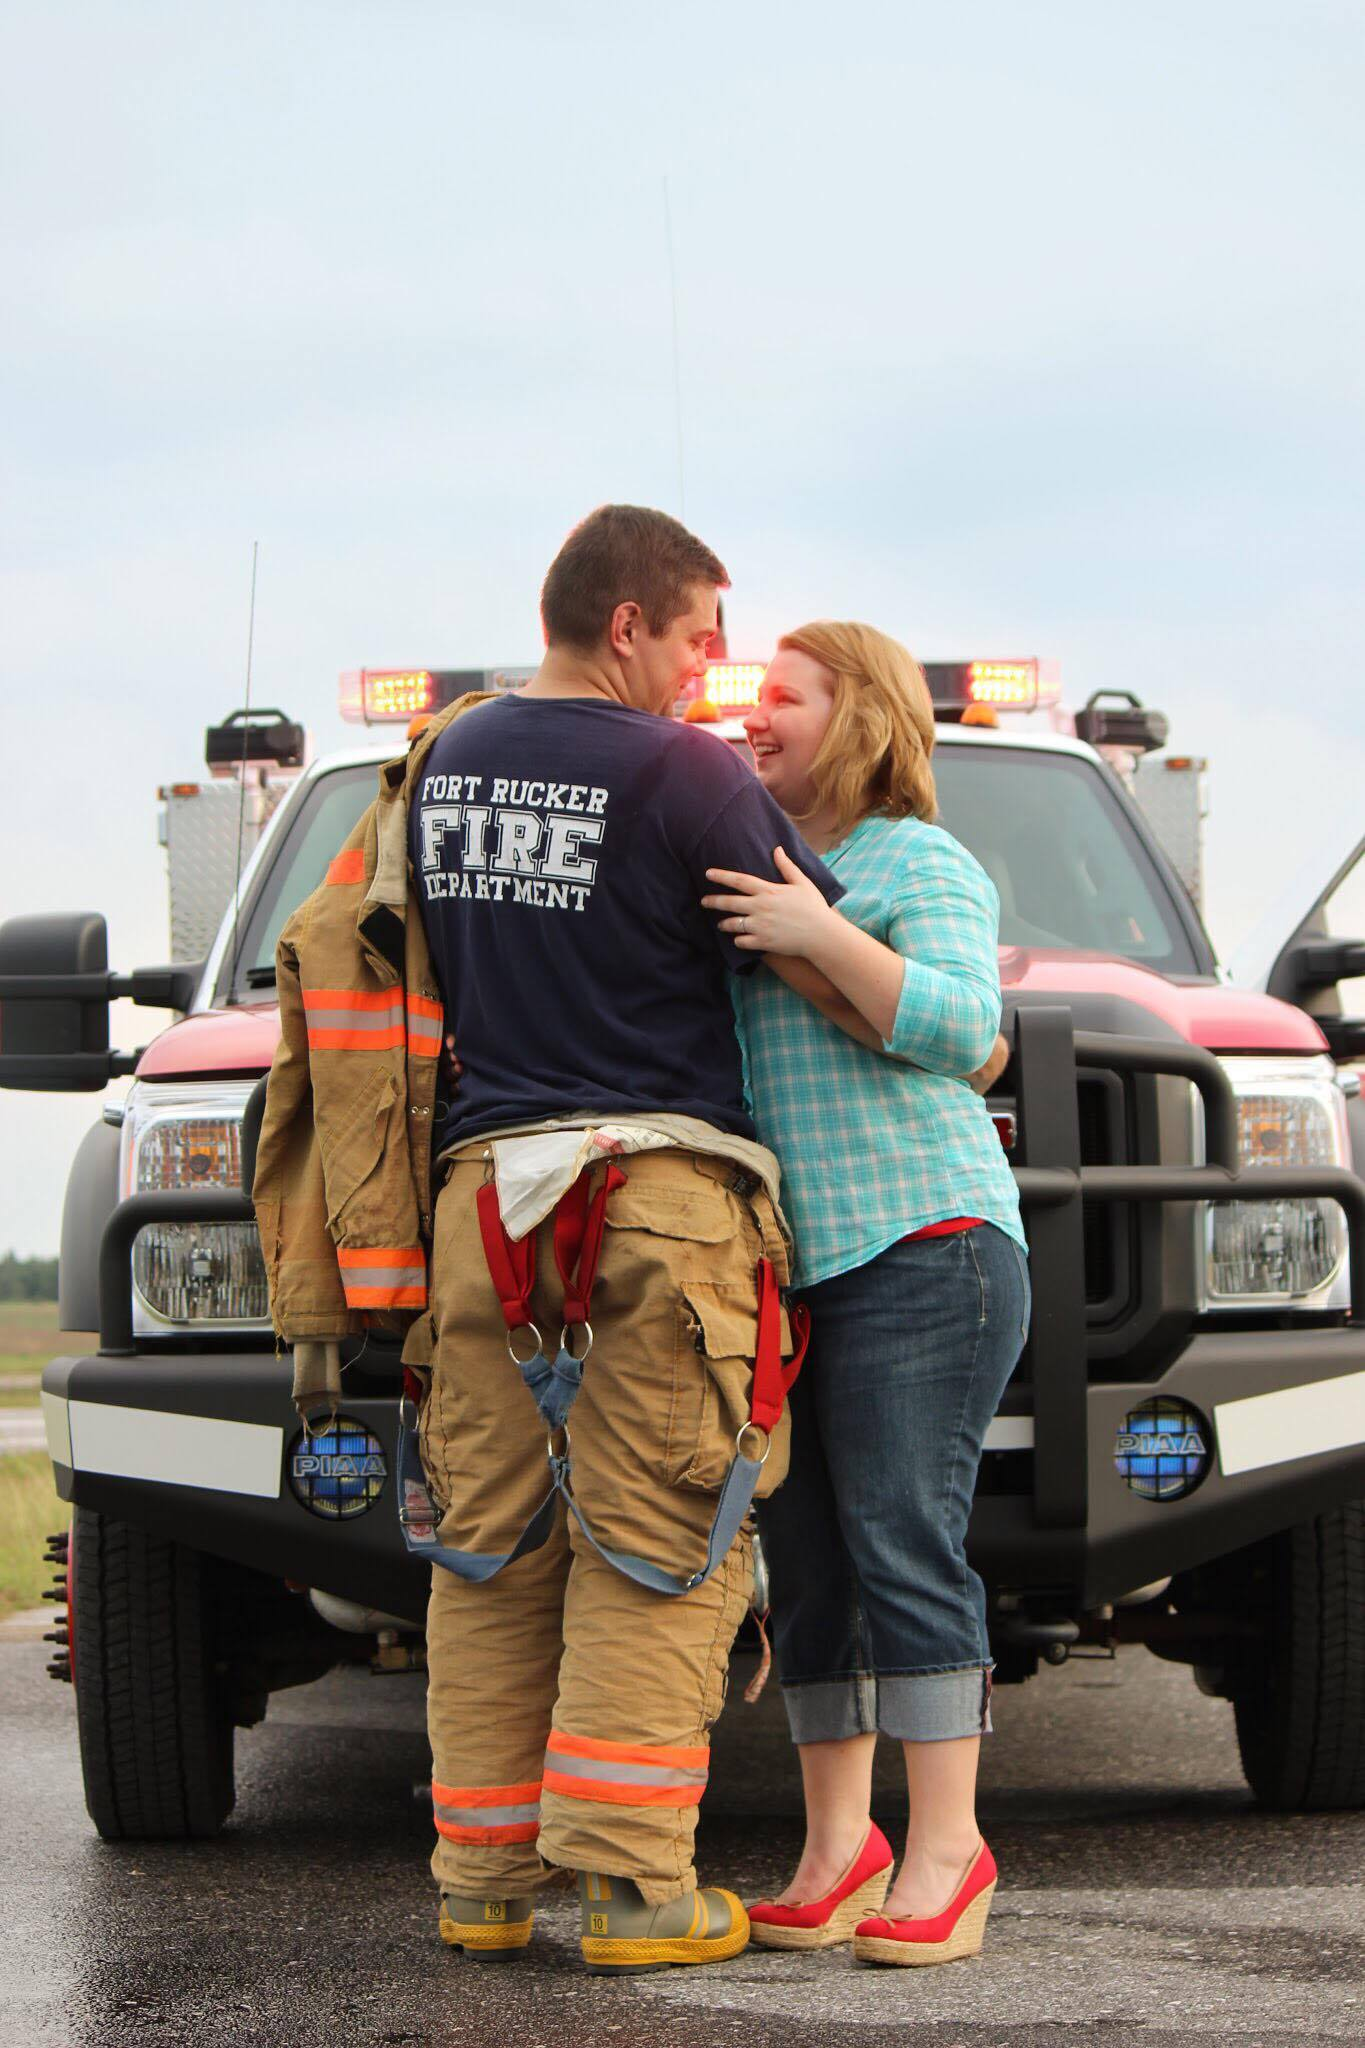 Firefighter Family Photos You Ll Cherish For Generations